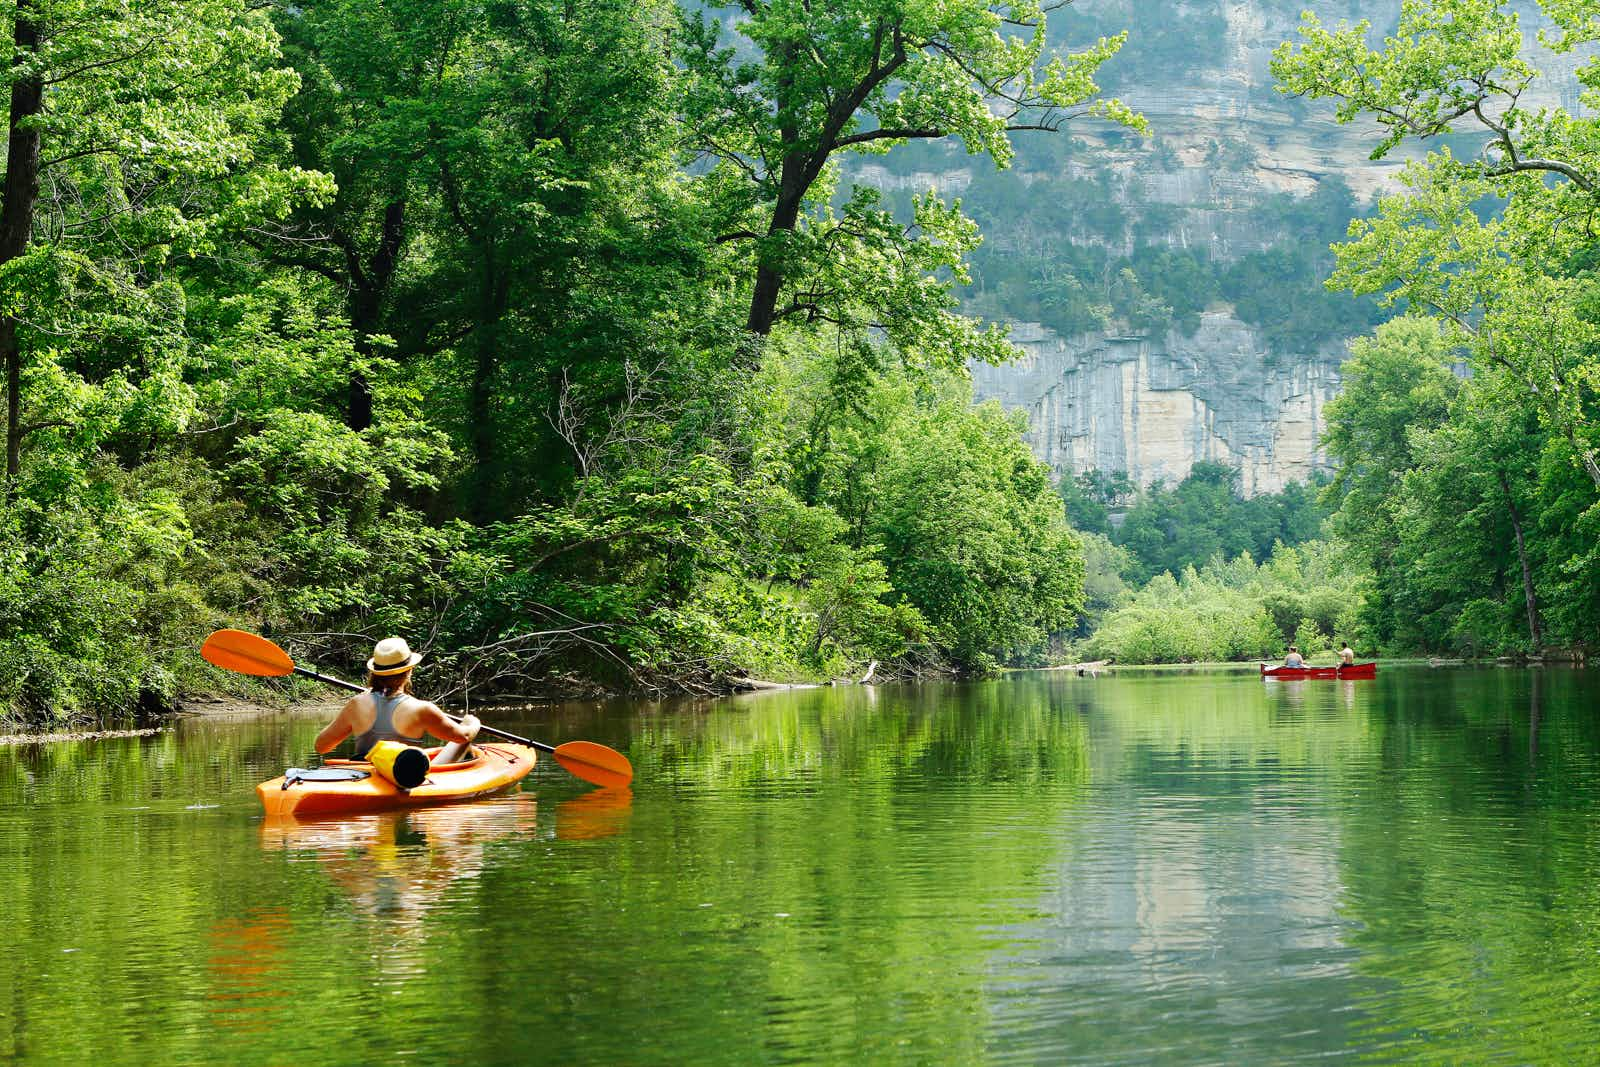 Kayakers and canoers on the Buffalo National River in Arkansas, as seen from Steel Creek Campground © Wesley Hitt / Getty Images